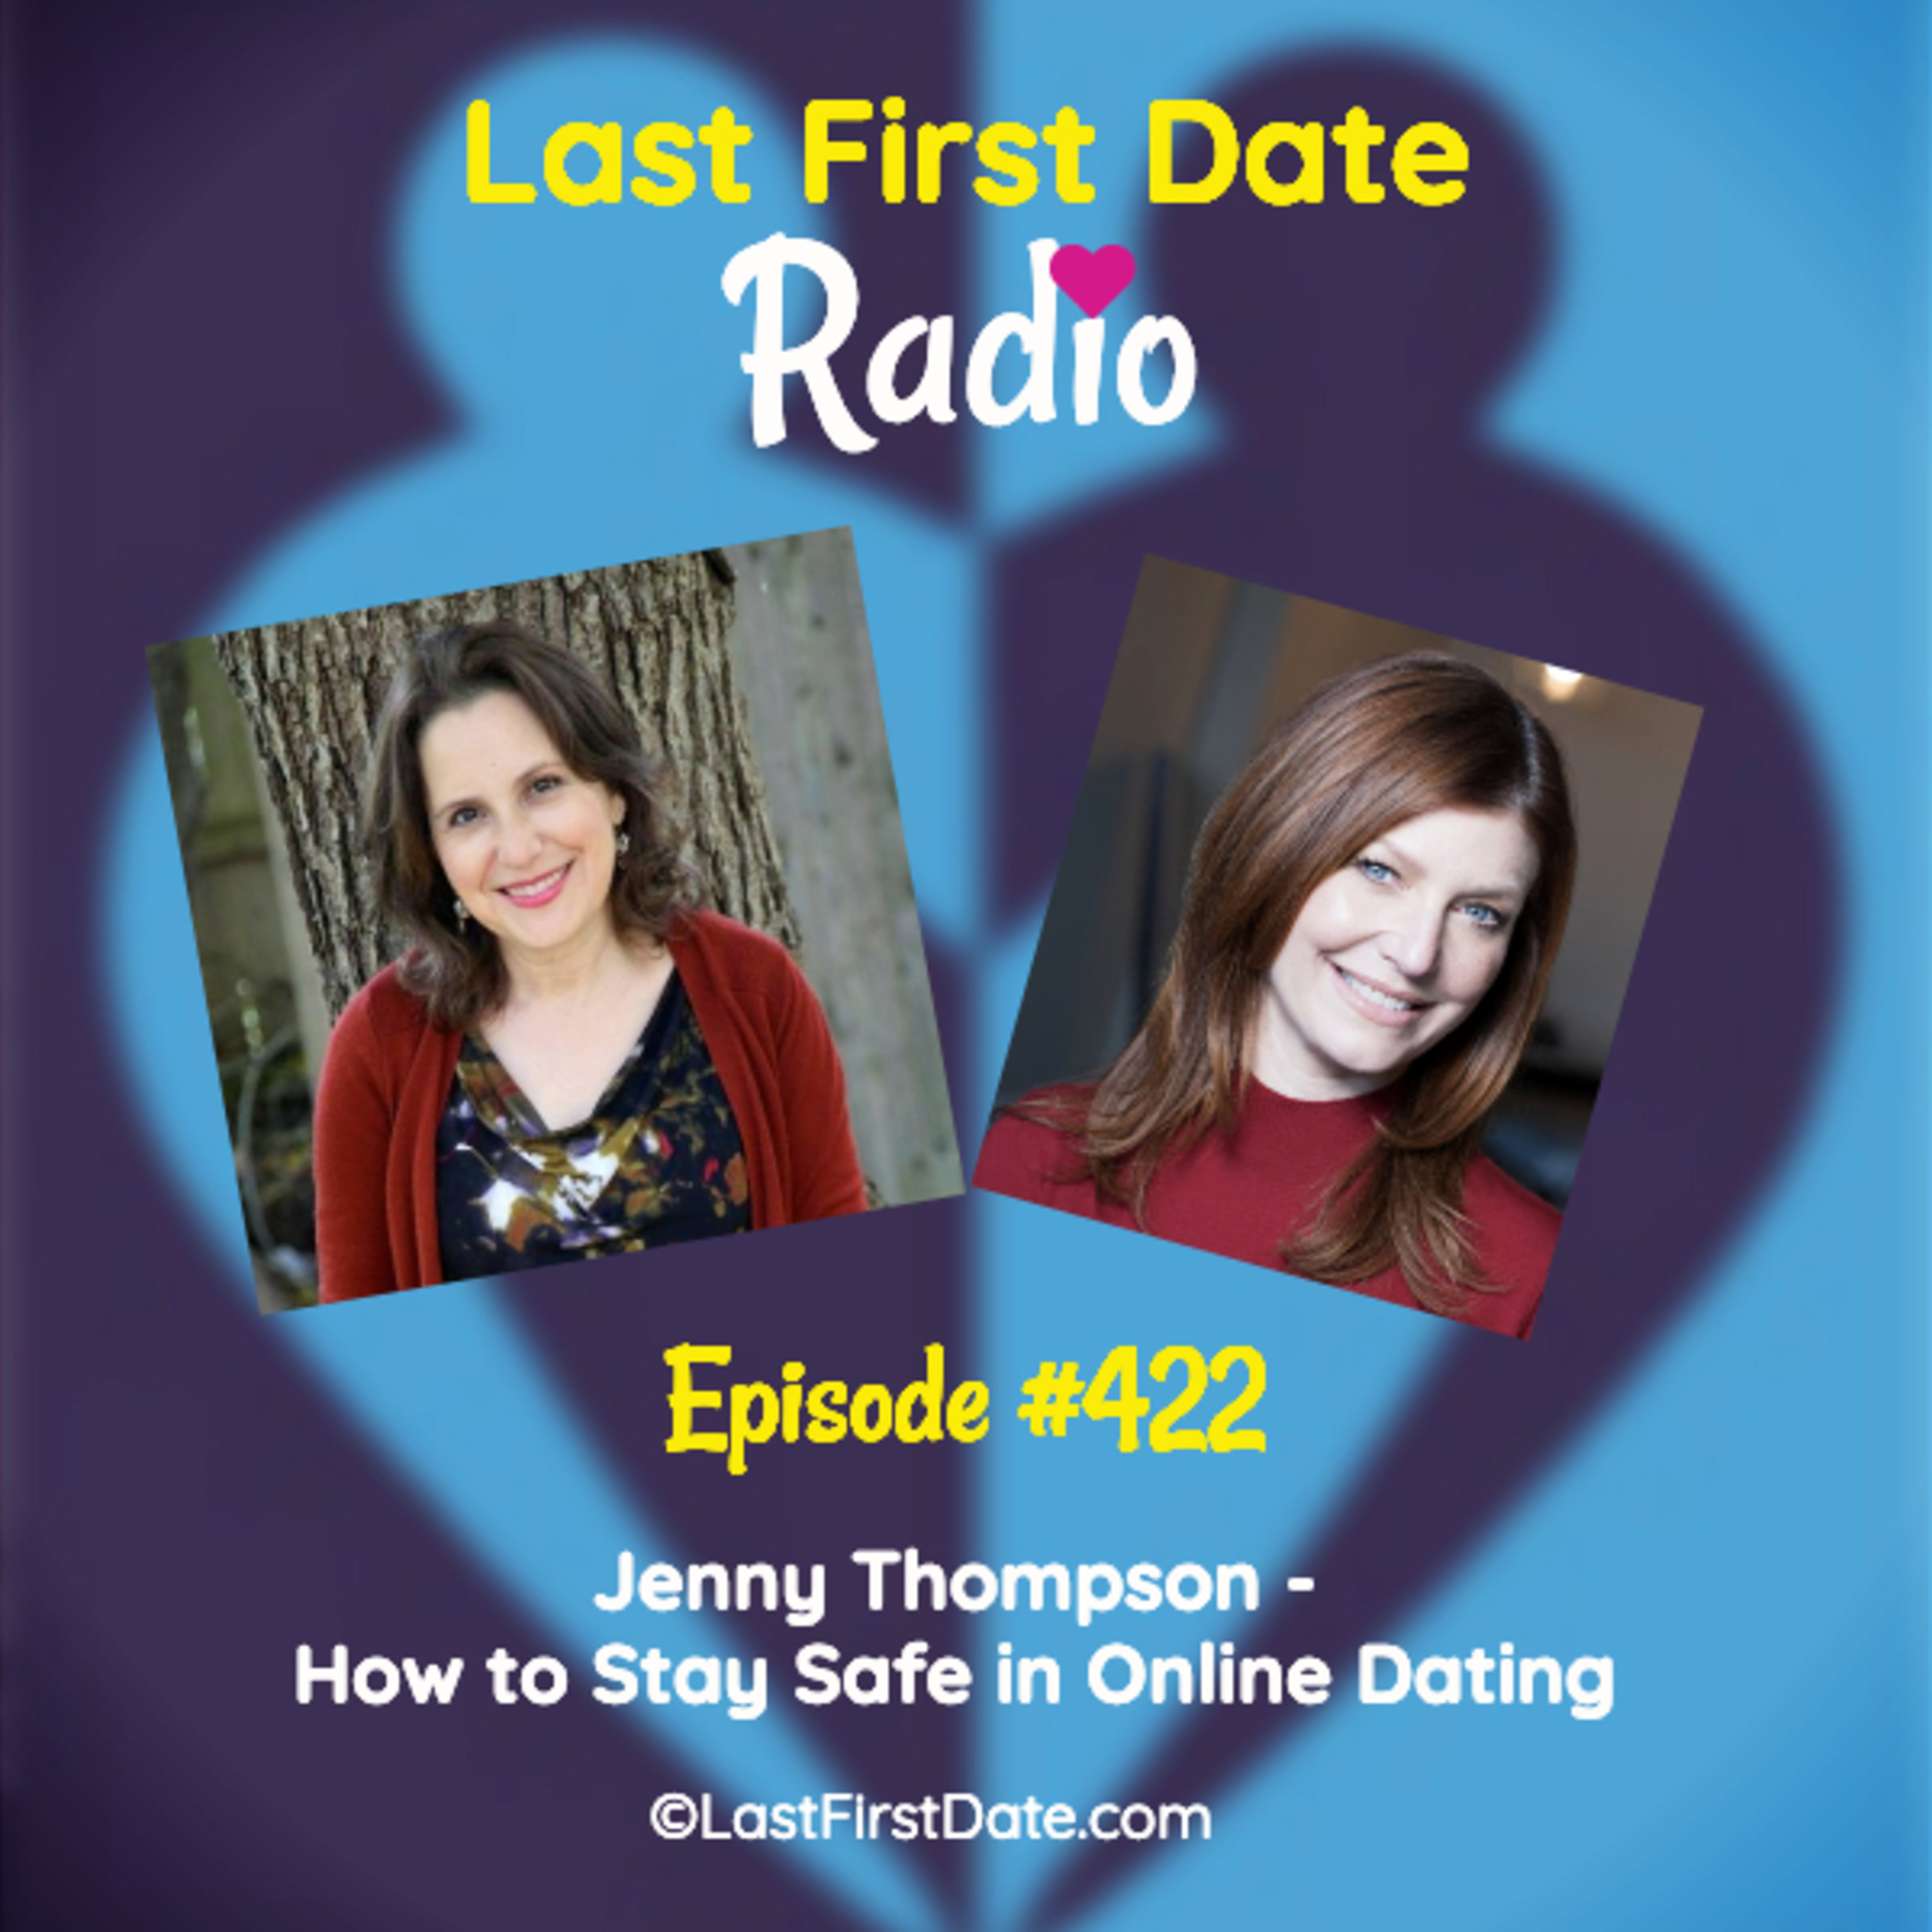 Last First Date Radio - EP 422: Jenny Thompson - How to Stay Safe in Online Dating